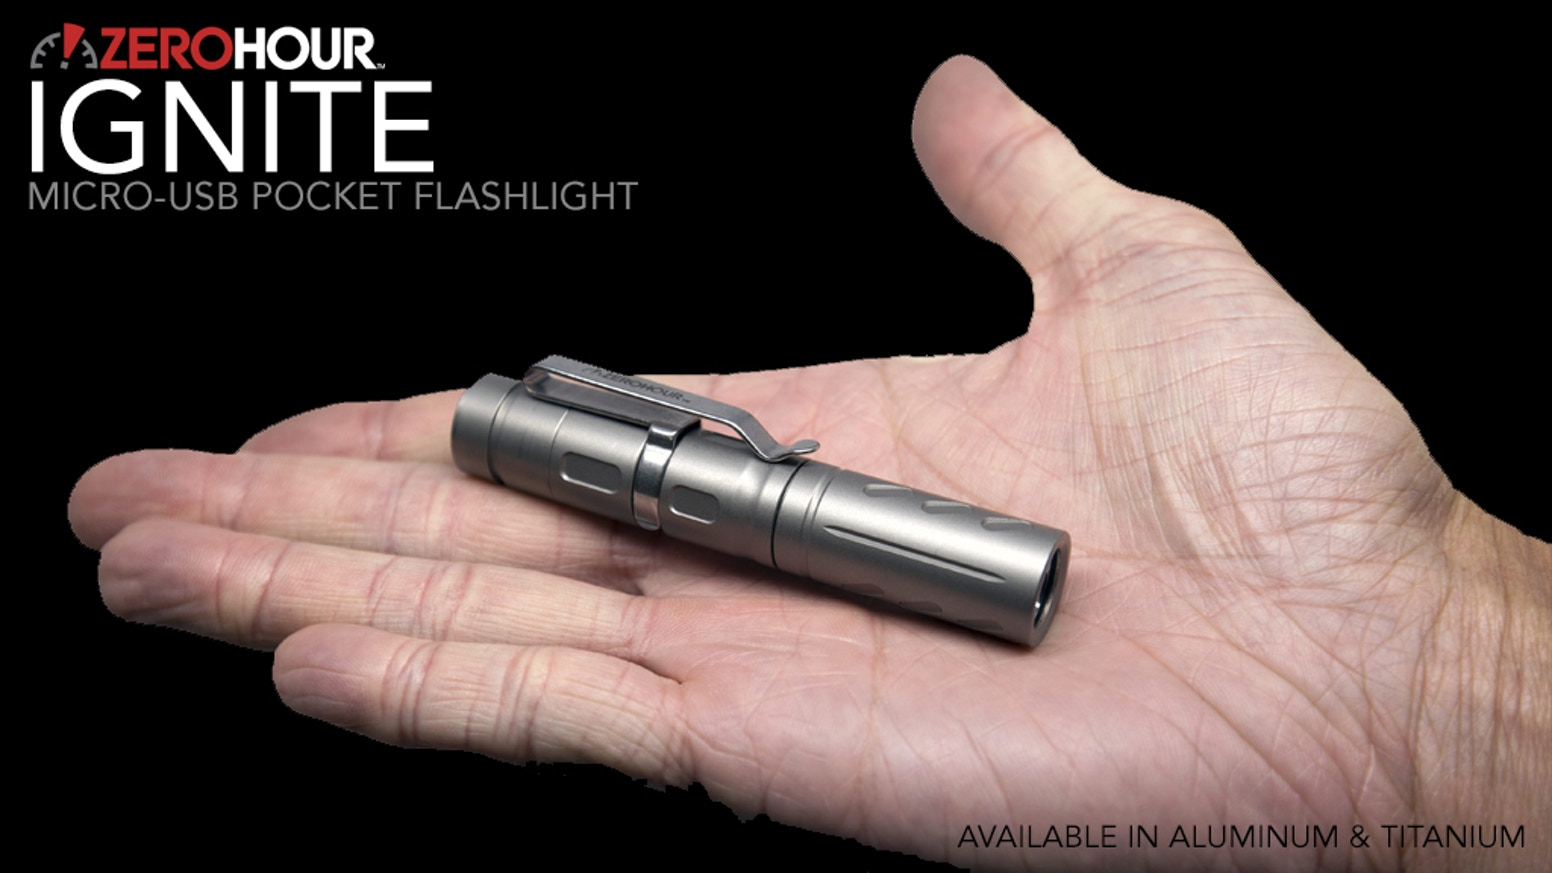 Ultra-compact everyday carry flashlight with rechargeable micro-USB port. Matte black aluminum, matte titanium, or polished titanium.